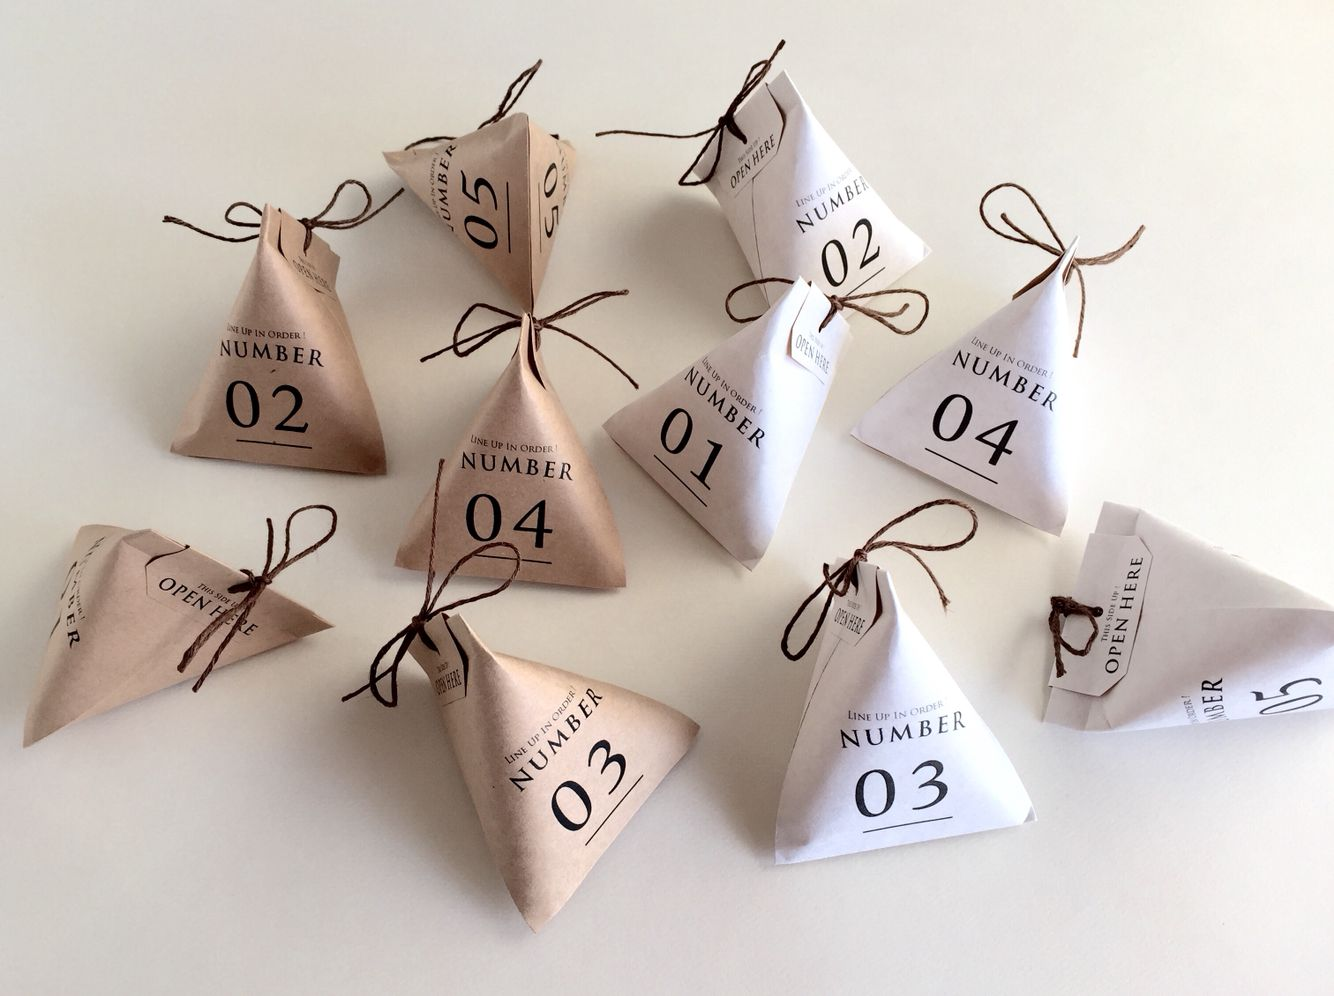 self promotion idea put a hershey kiss inside with a fortune and keep those clients amazed at your creativity - Self Promotion Ideas How To Promote Yourself And Your Brand